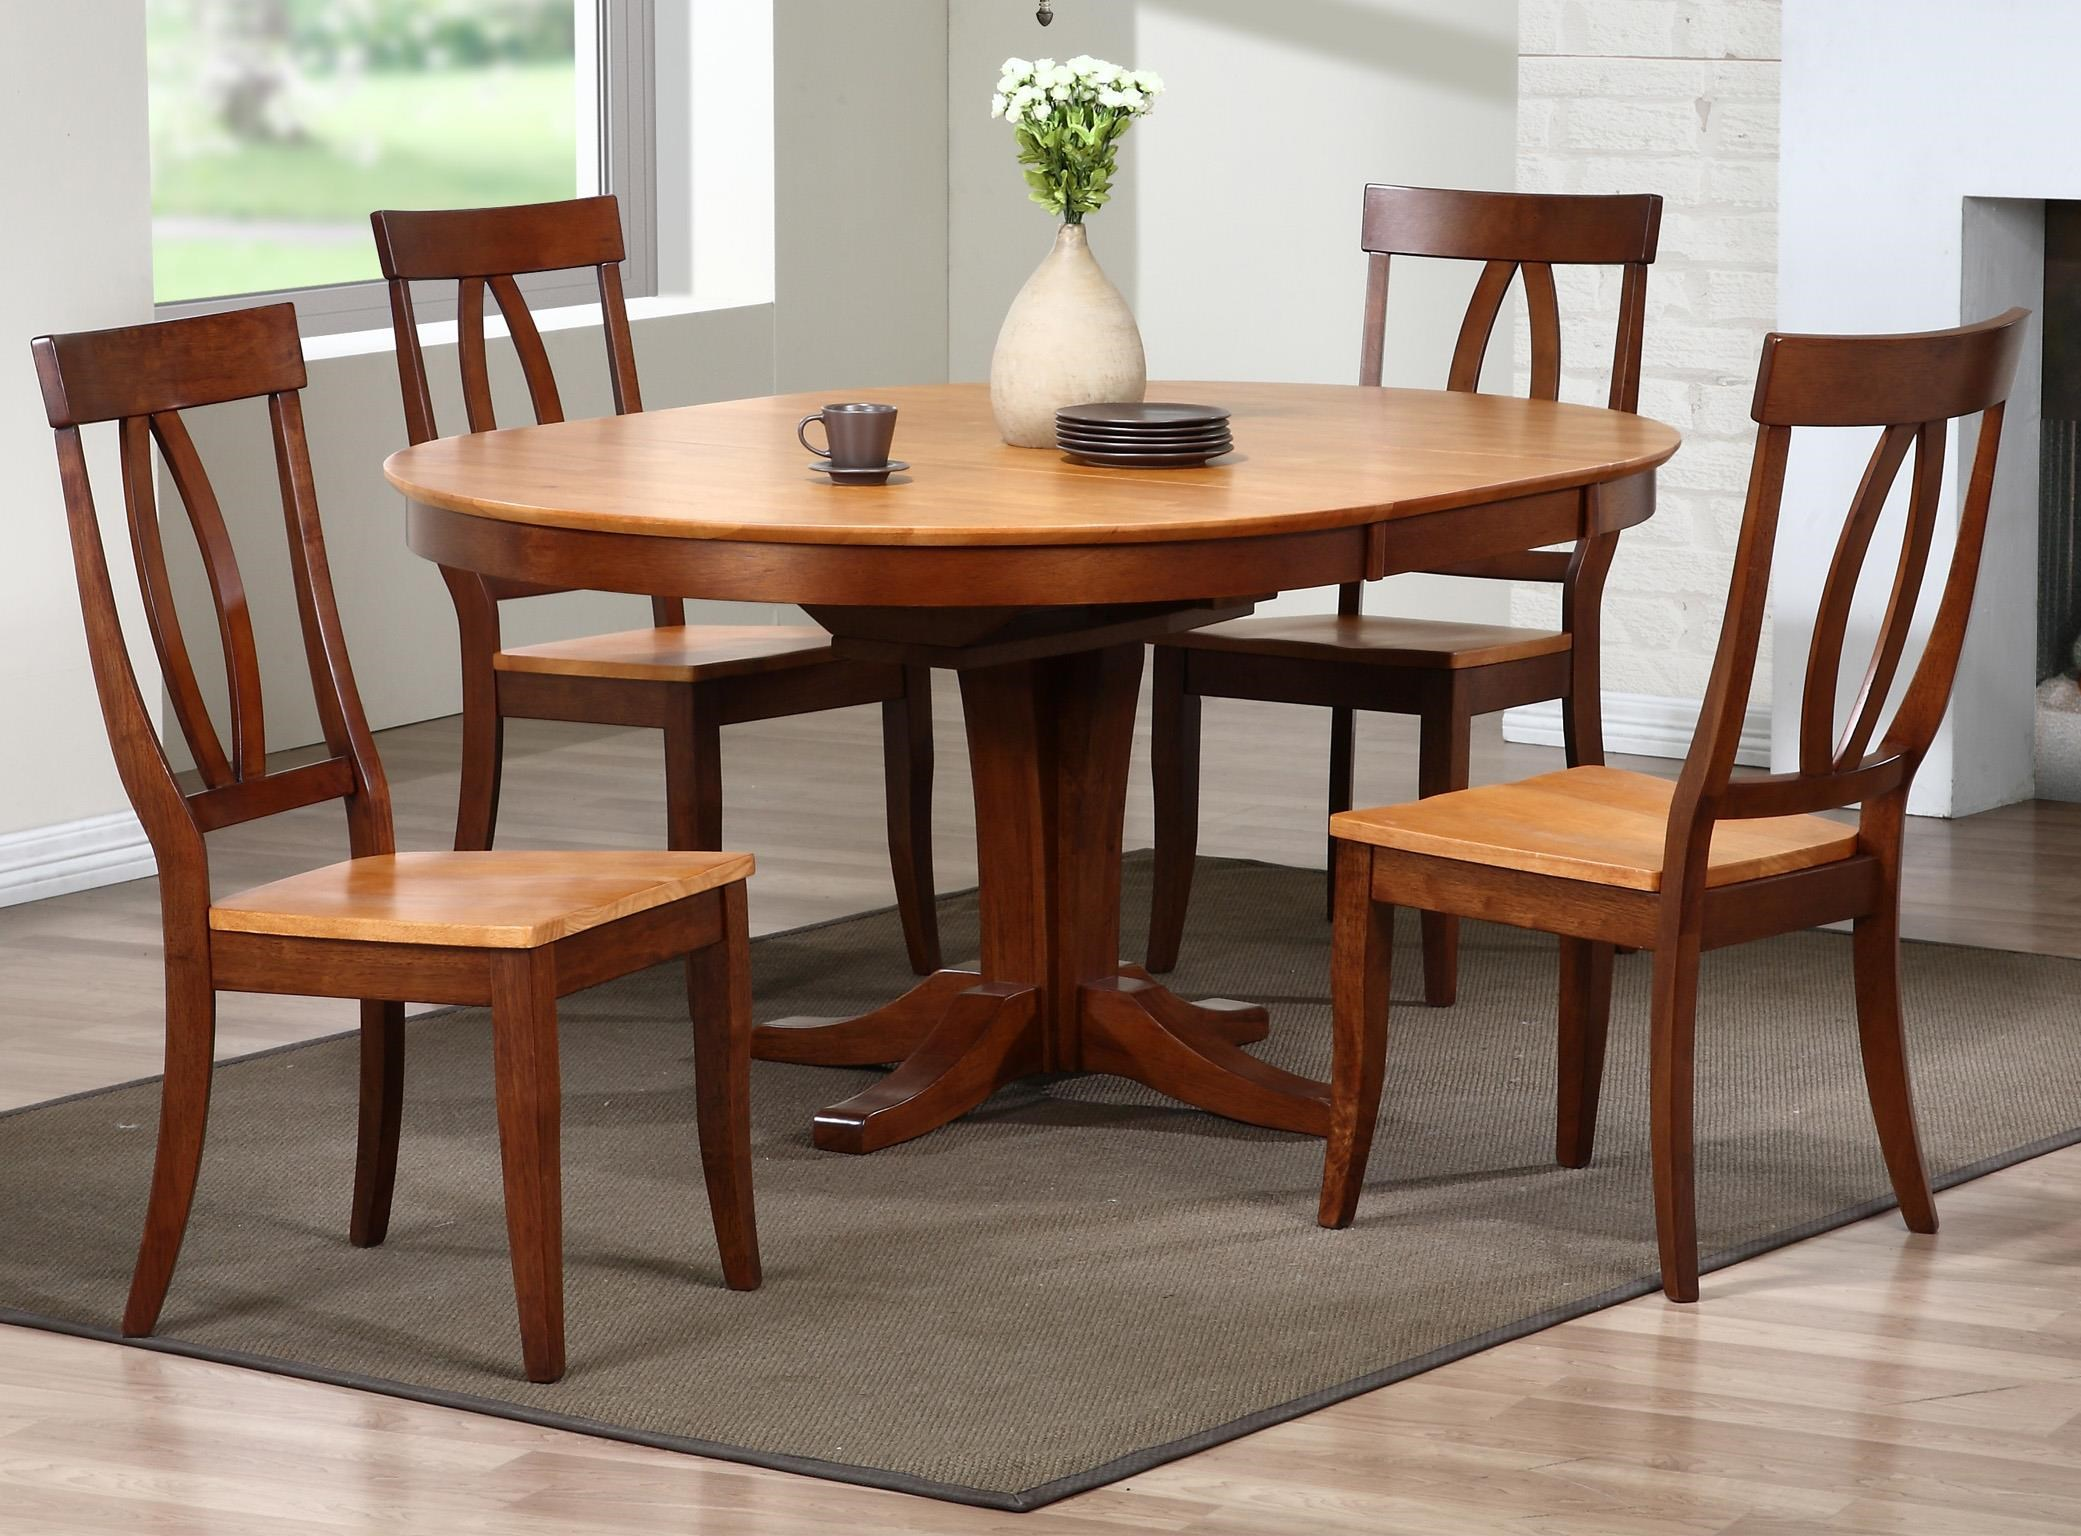 Santa Barbara 5 Piece Dining Set with Keyhole Back Chairs